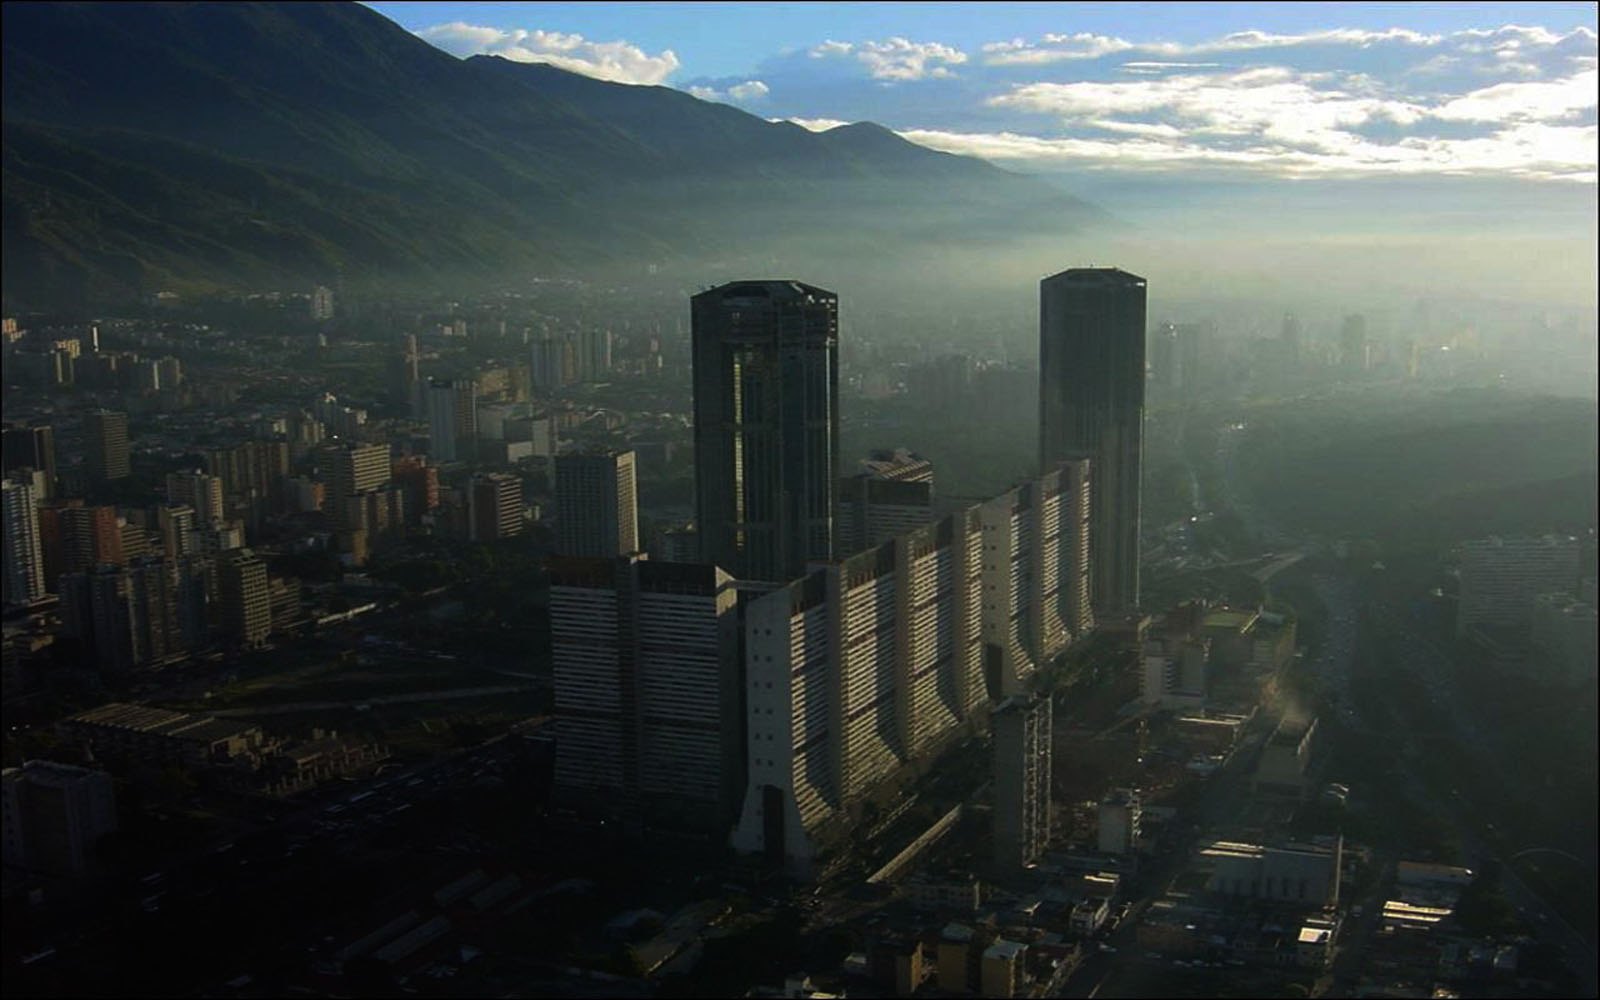 Twin Towers in Caracas, Venezuela